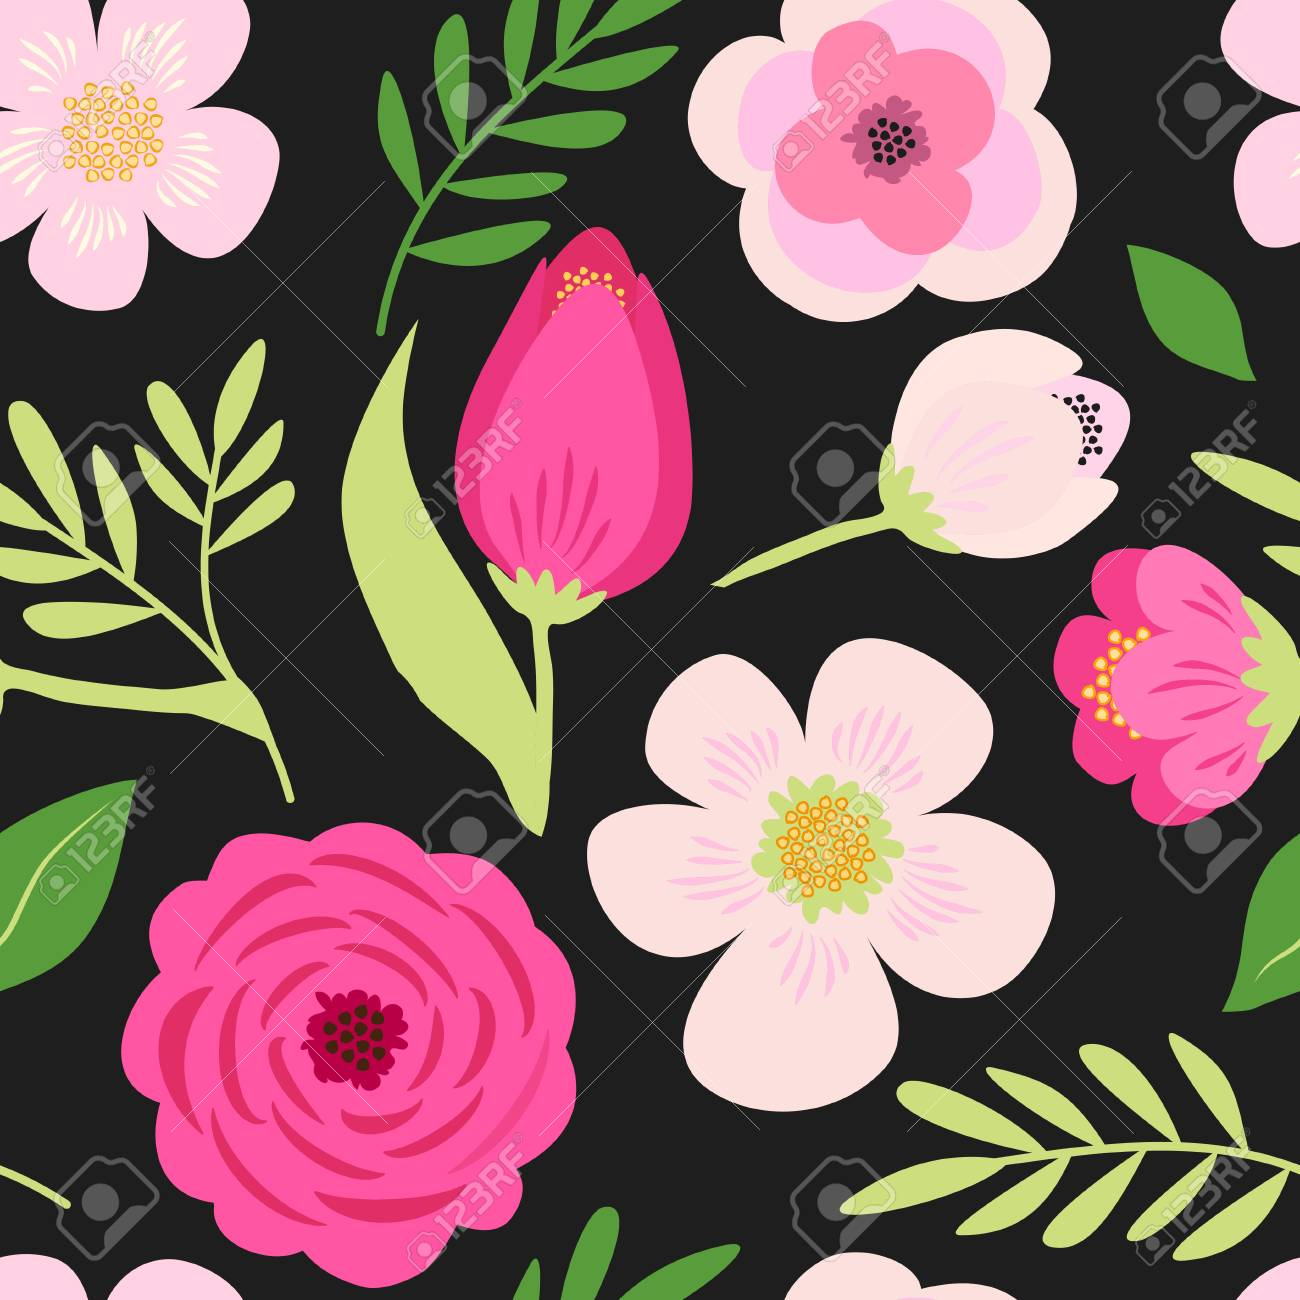 Cute seamless hand drawn spring pattern with primitive rustic flowers and leaves - 95342481